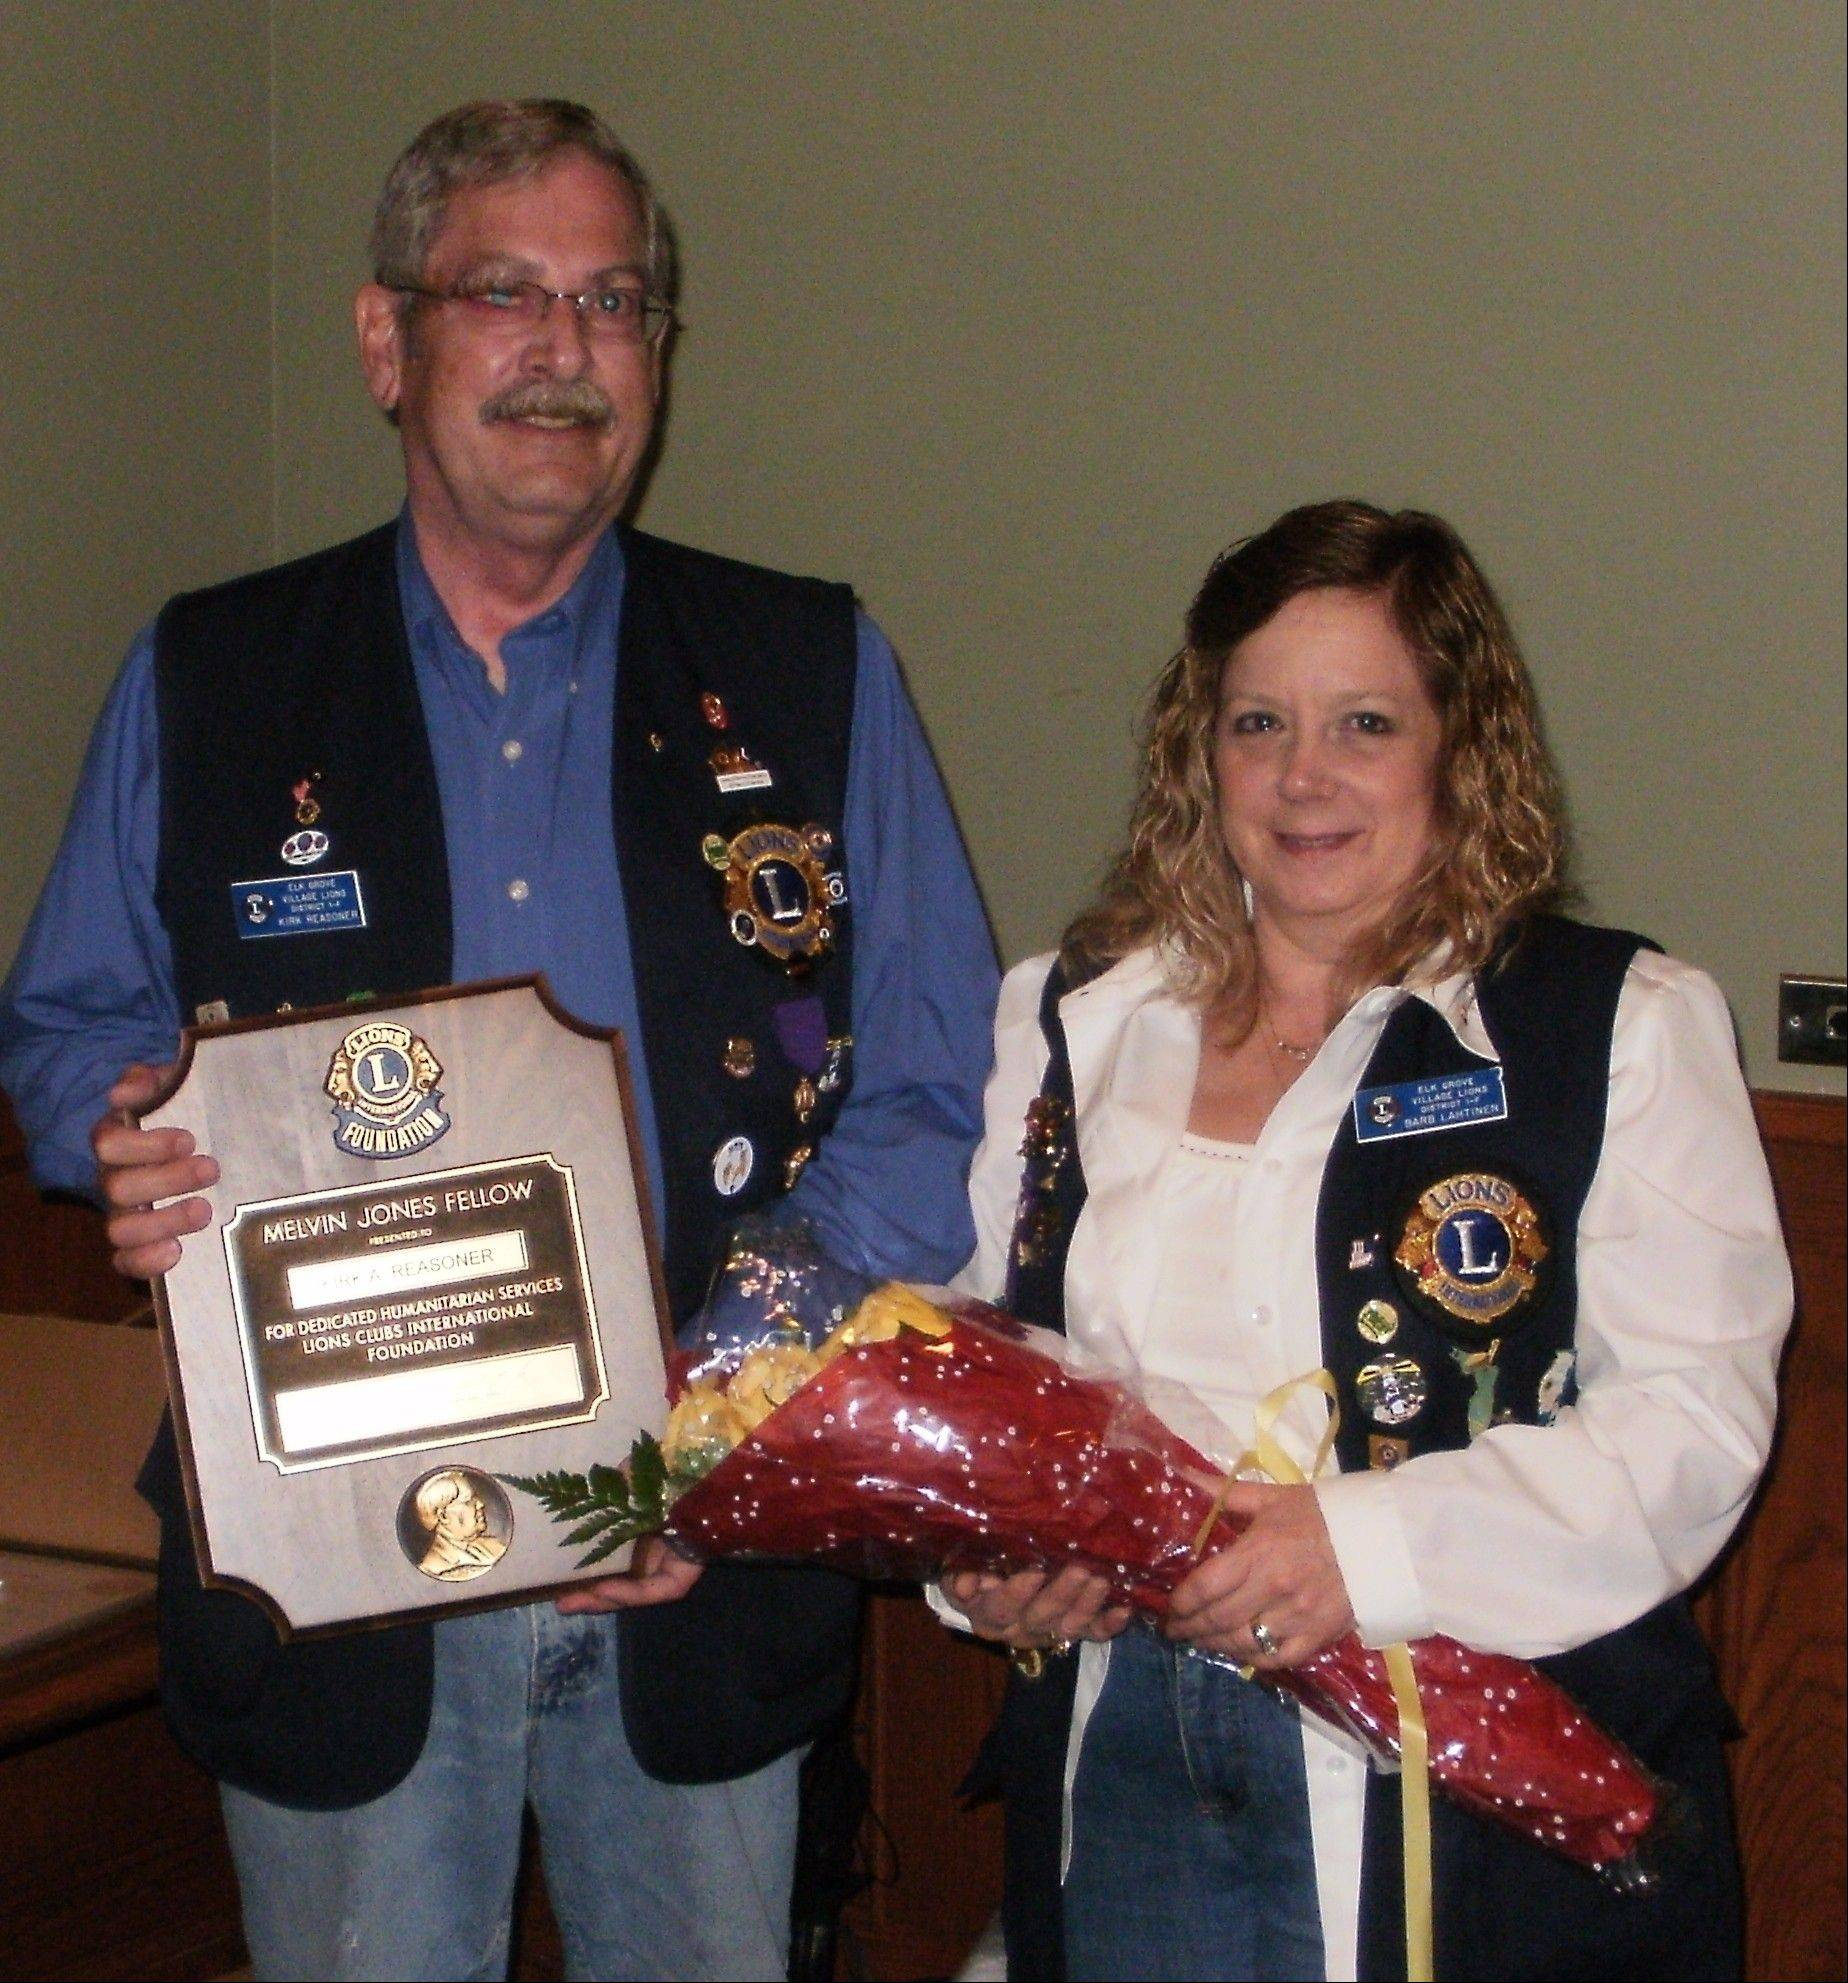 Outgoing President Barb Lahtinen and Melvin Jones recipient Kirk Reasoner.